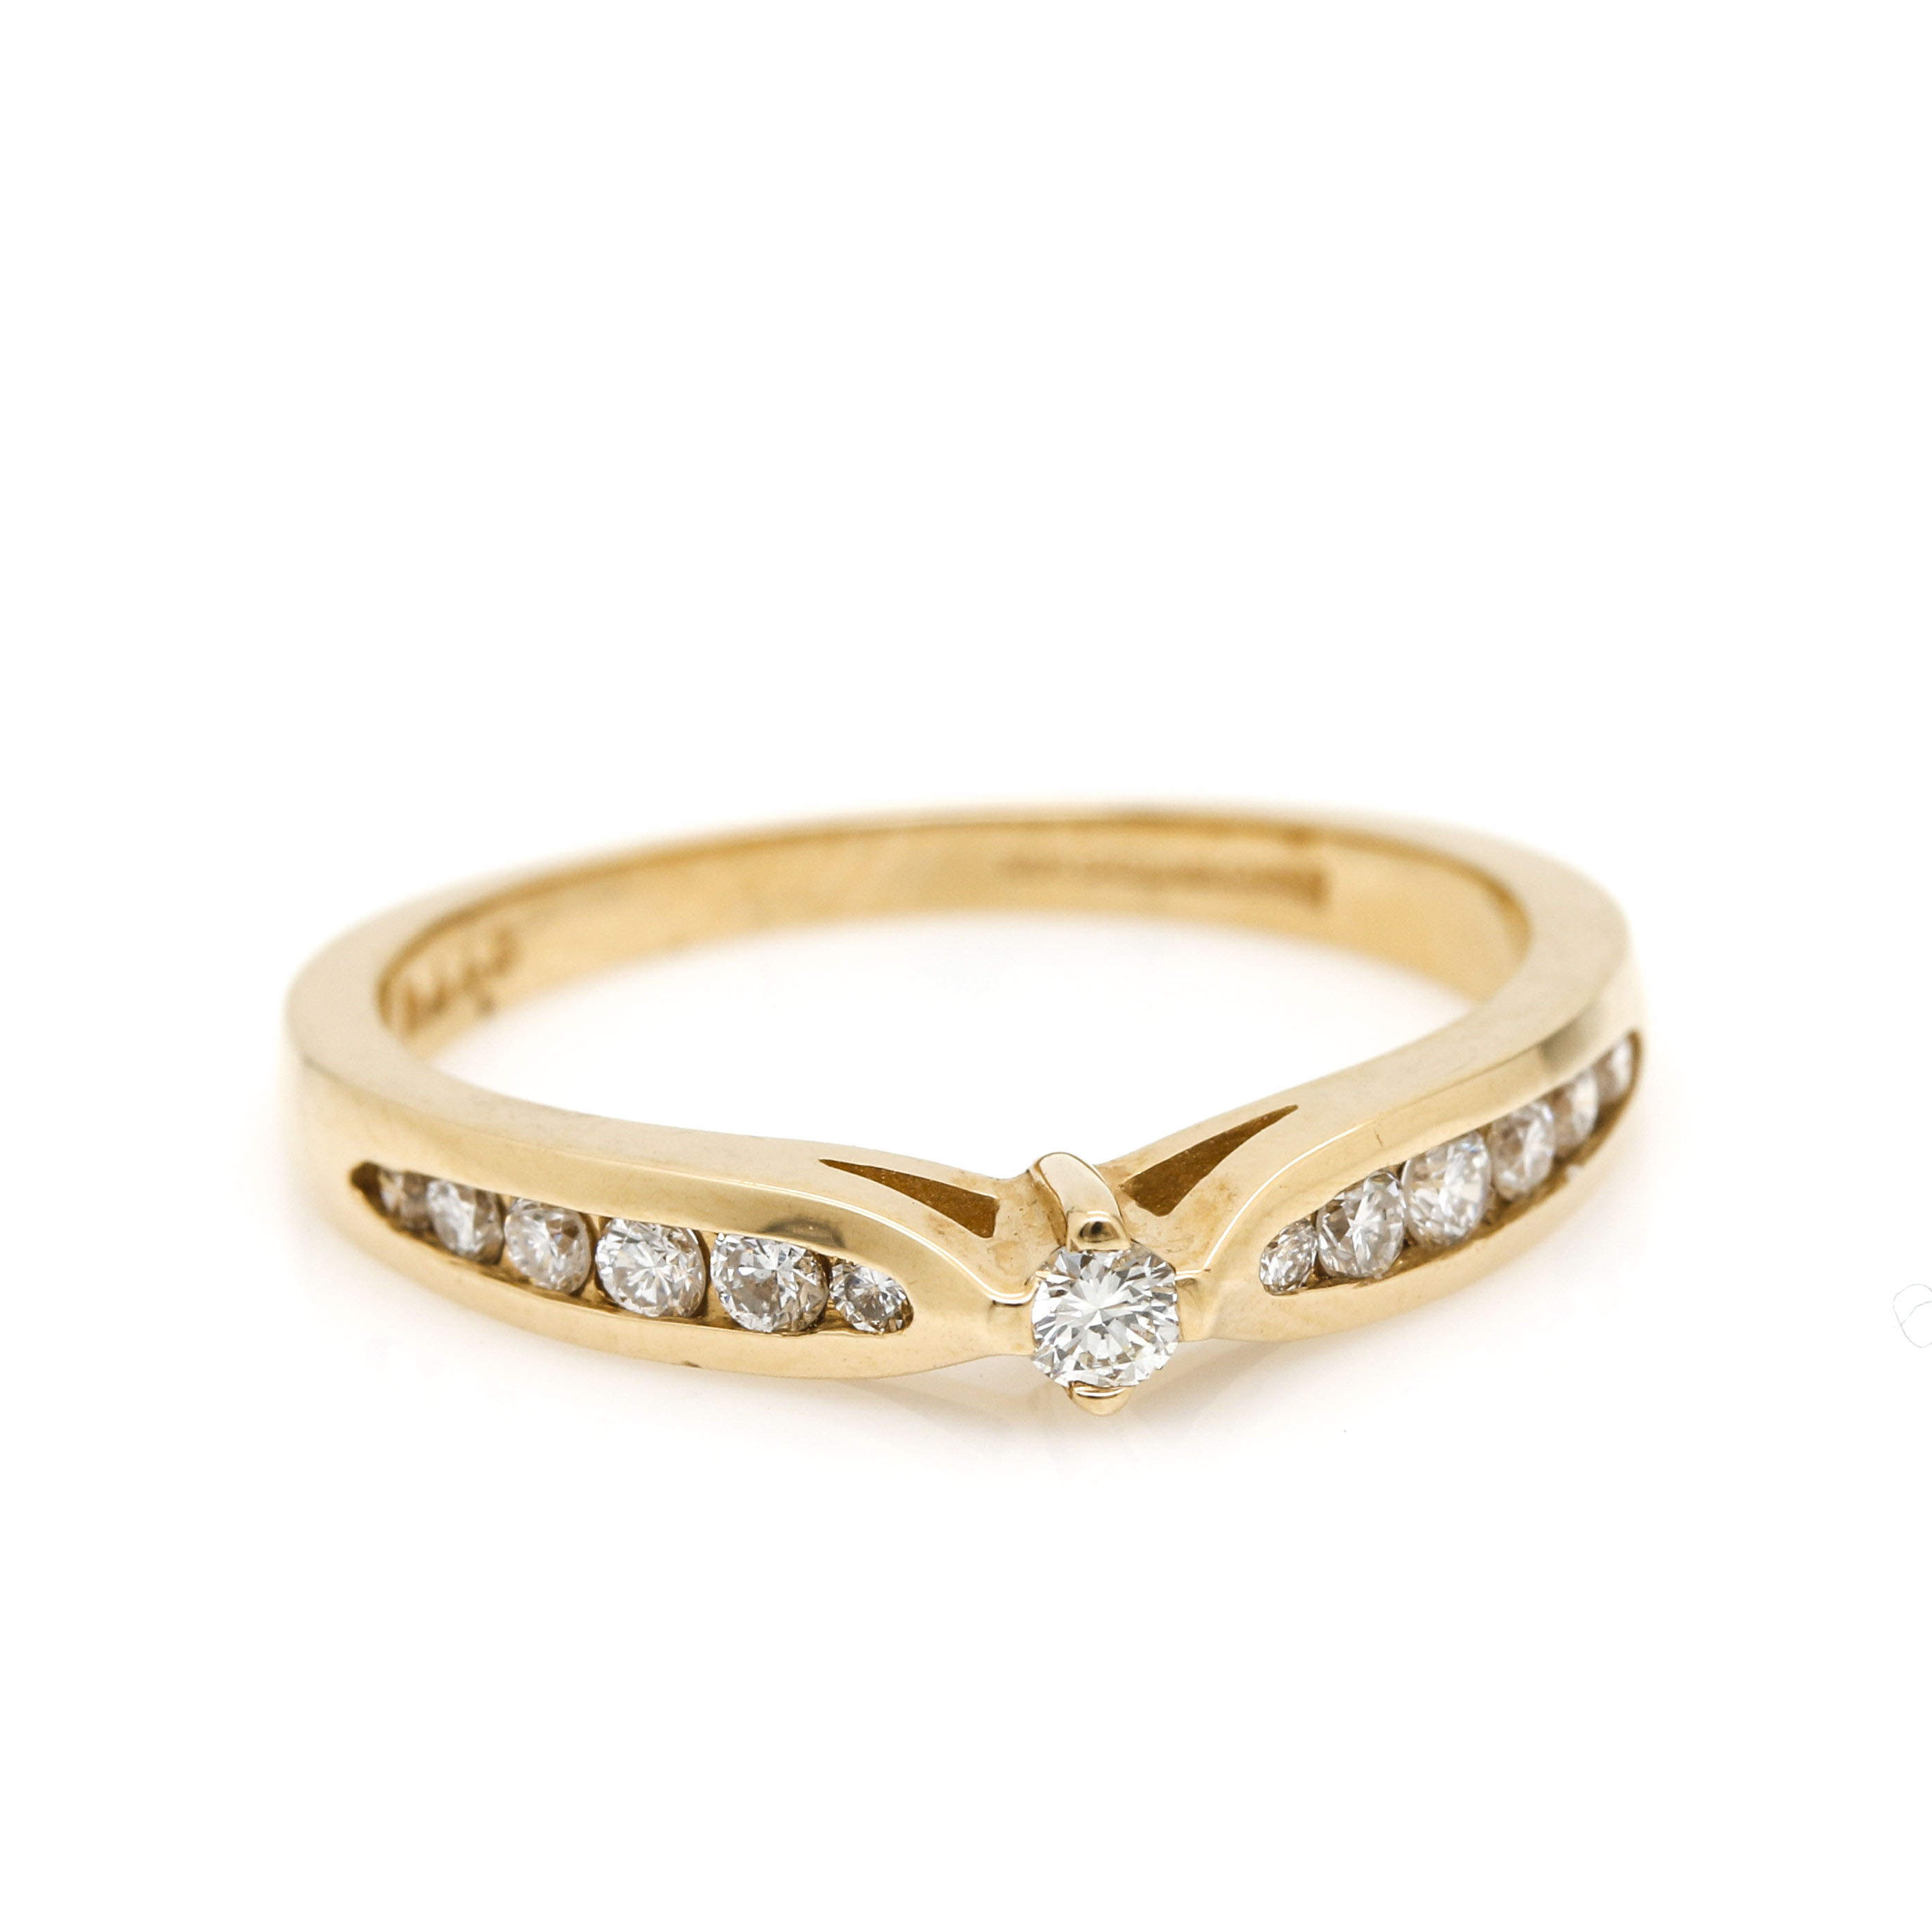 Artcarved 14K Yellow Gold Diamond Ring